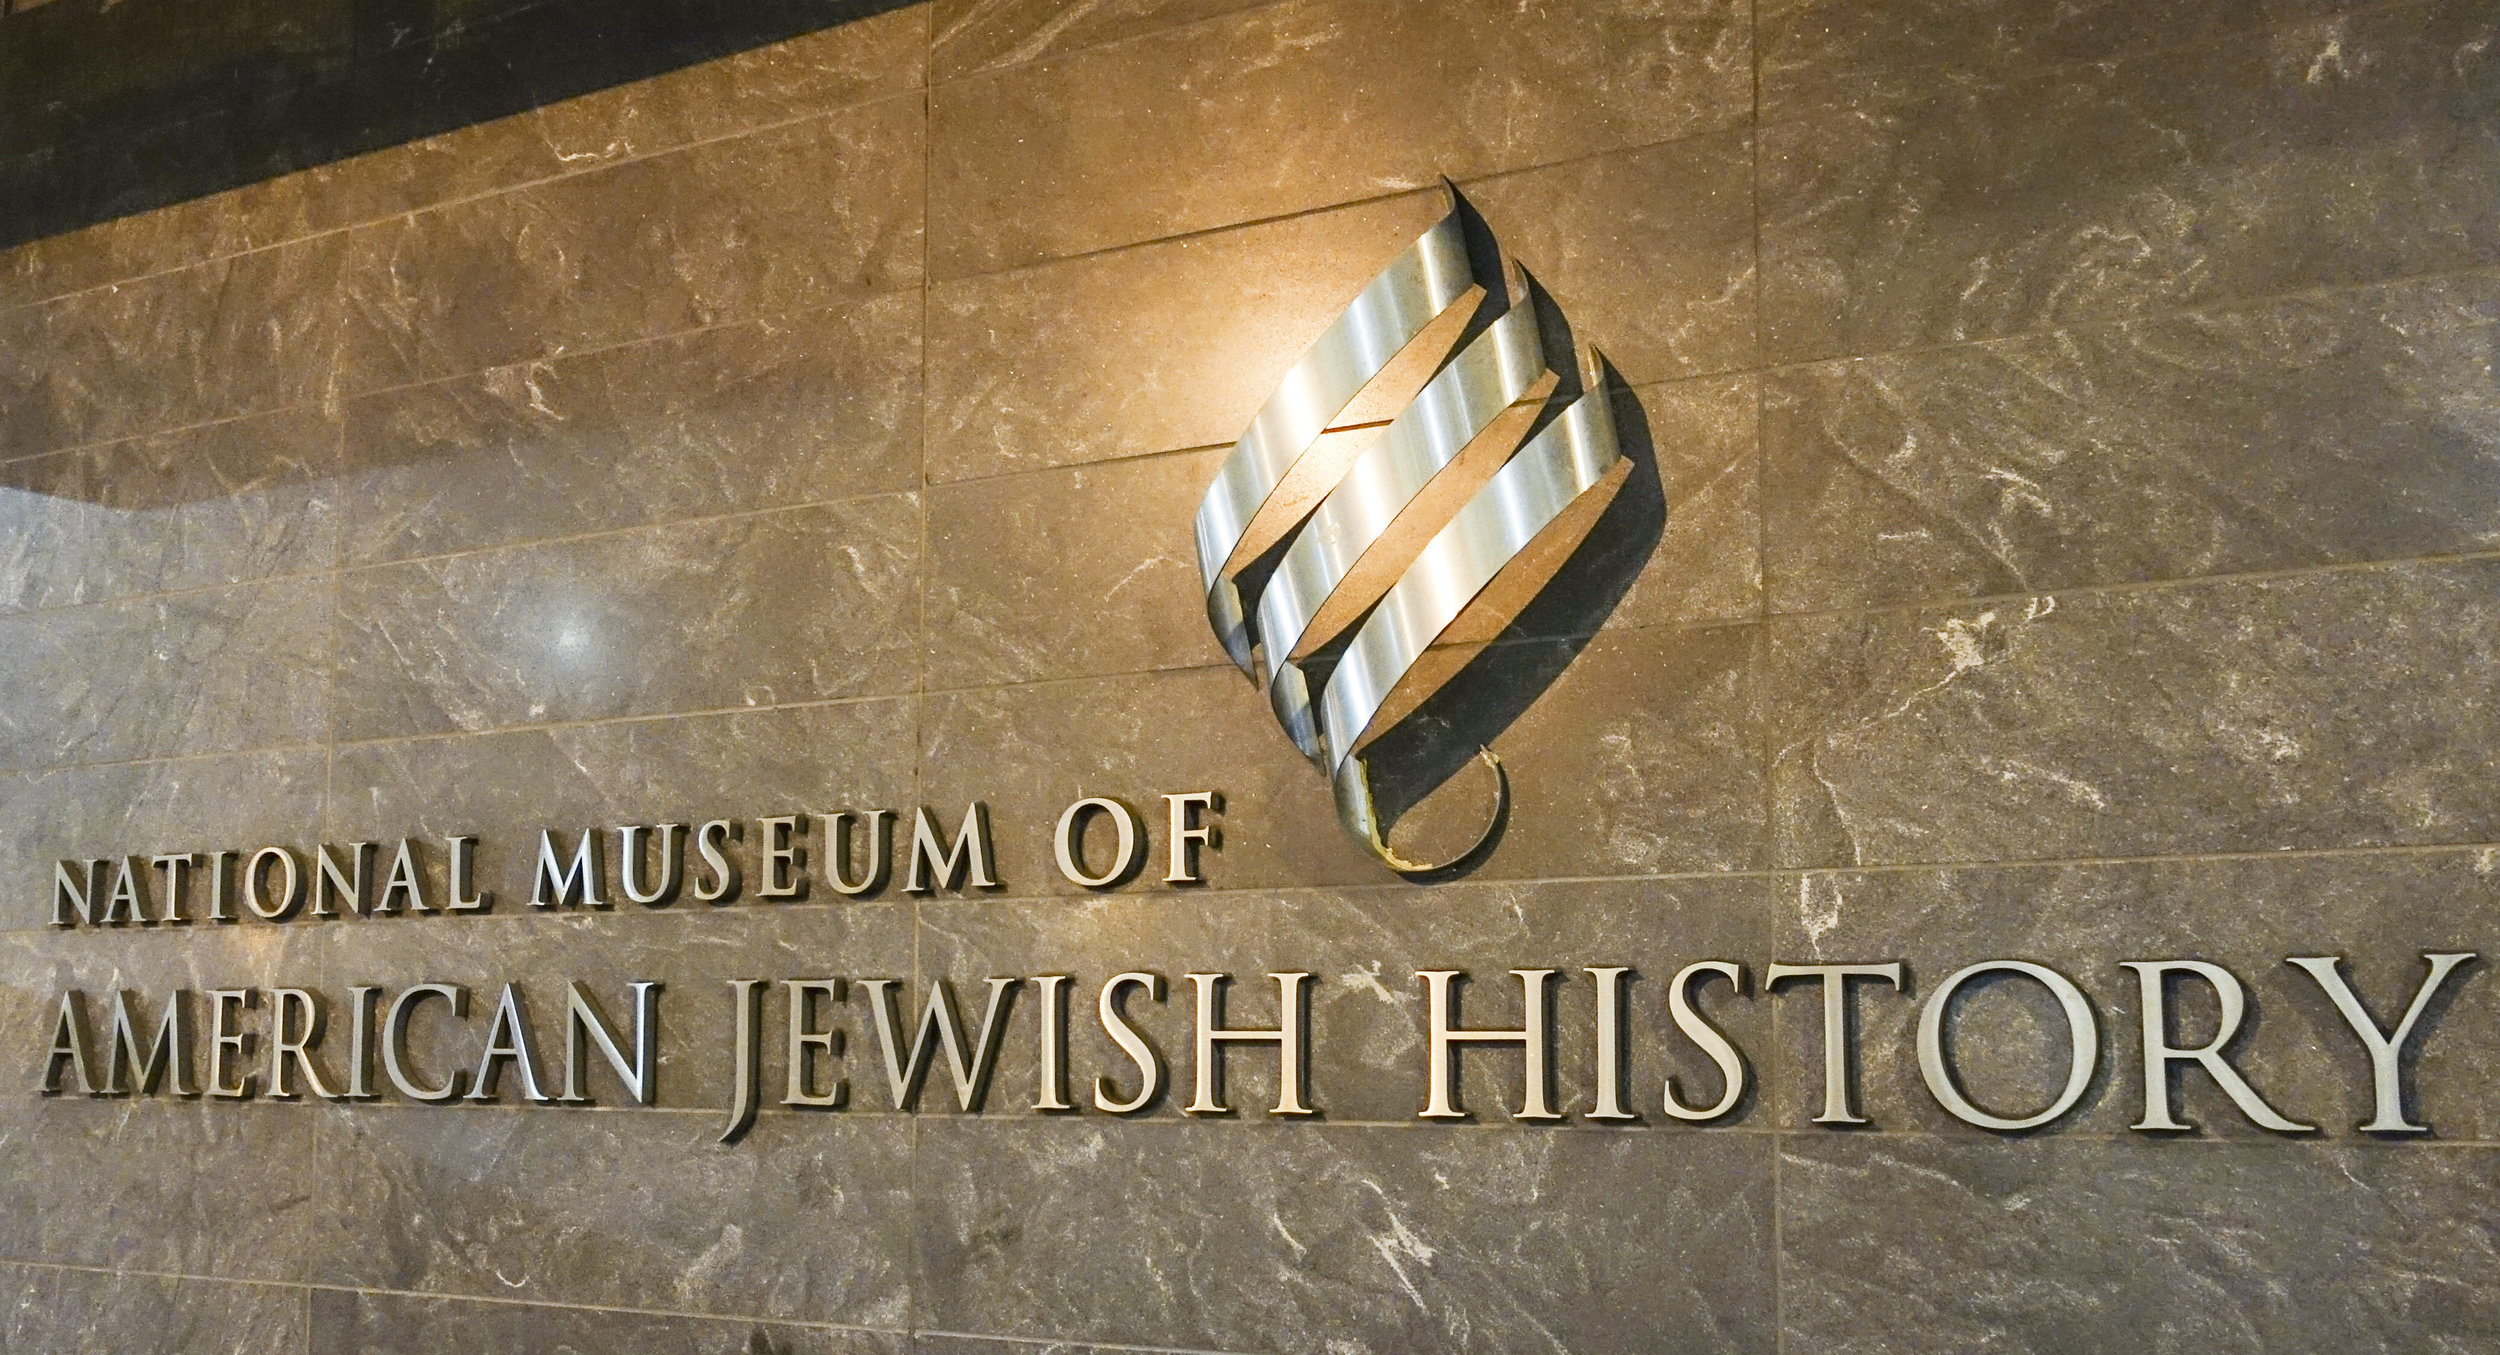 The National Museum of American Jewish History is one organization supported by the Millers. 4kclips/shutterstock